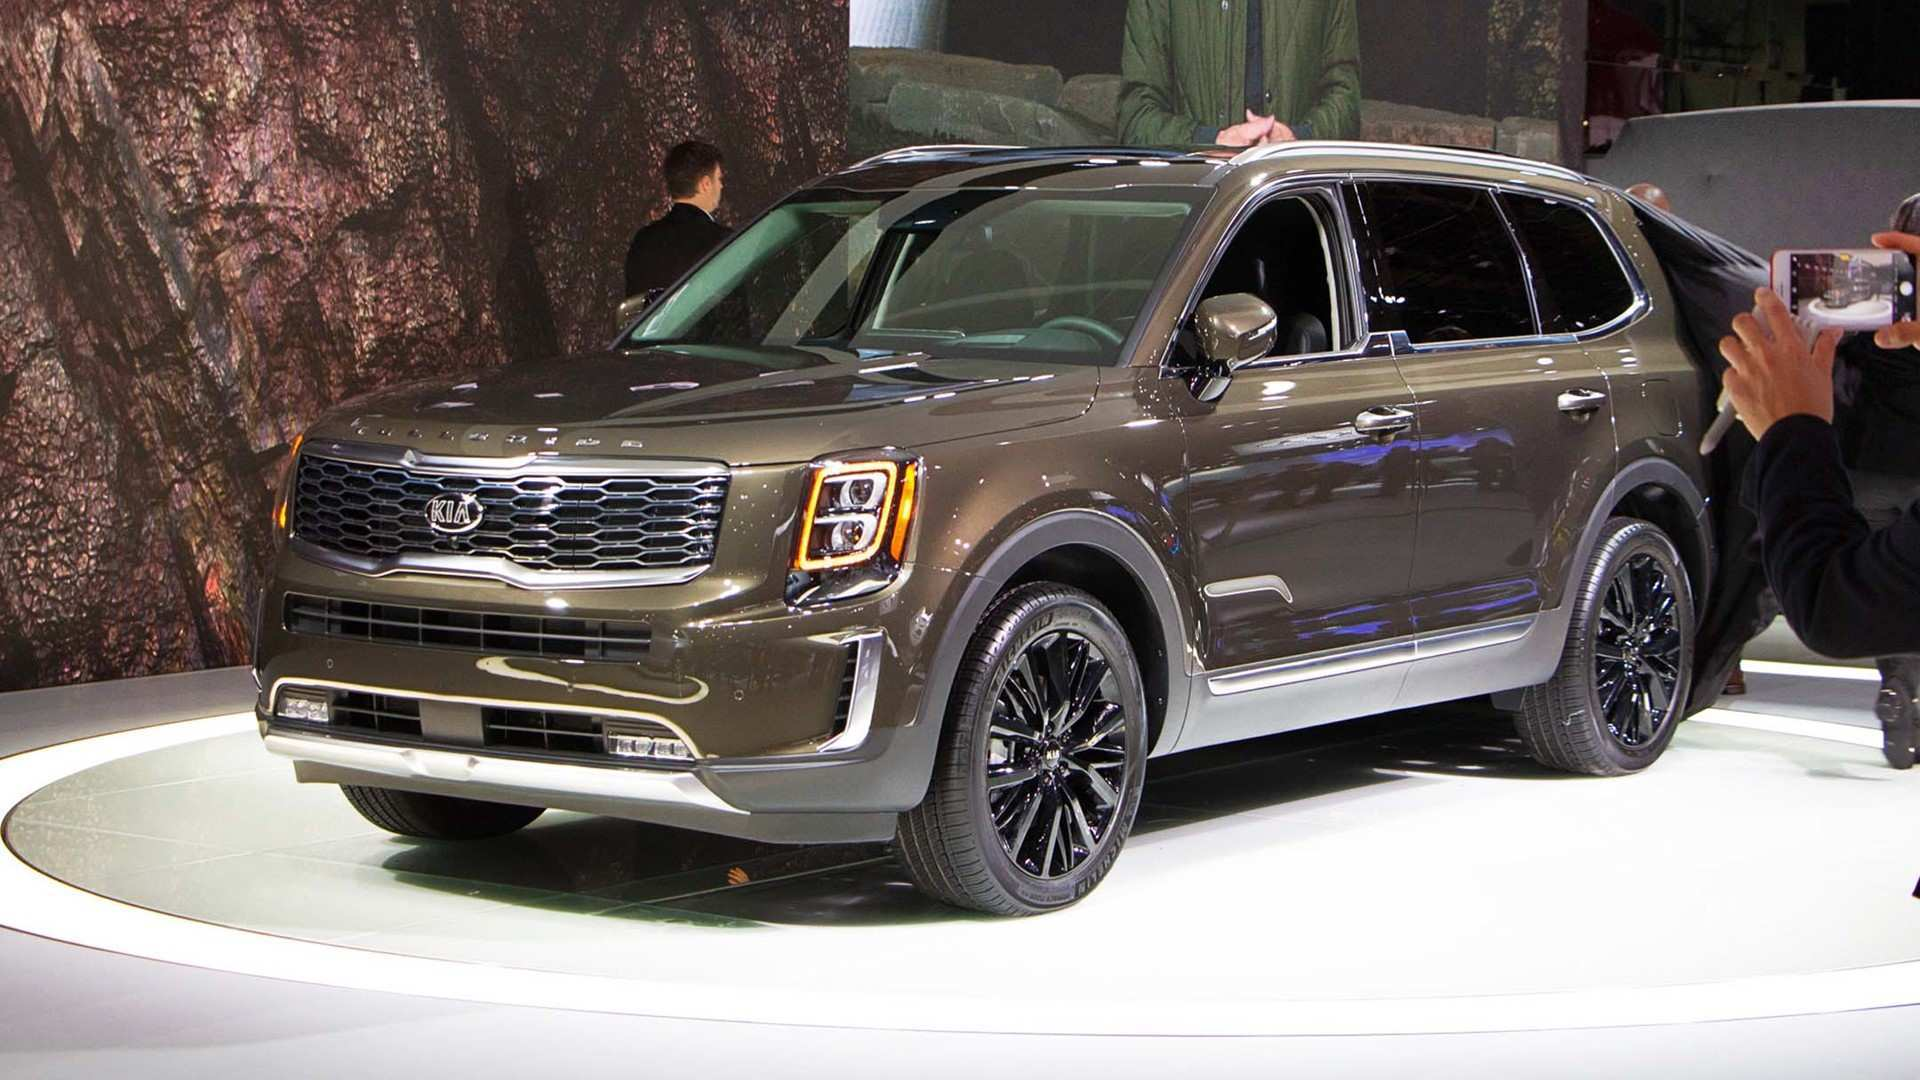 52 All New 2020 Kia Telluride Images Performance And New Engine